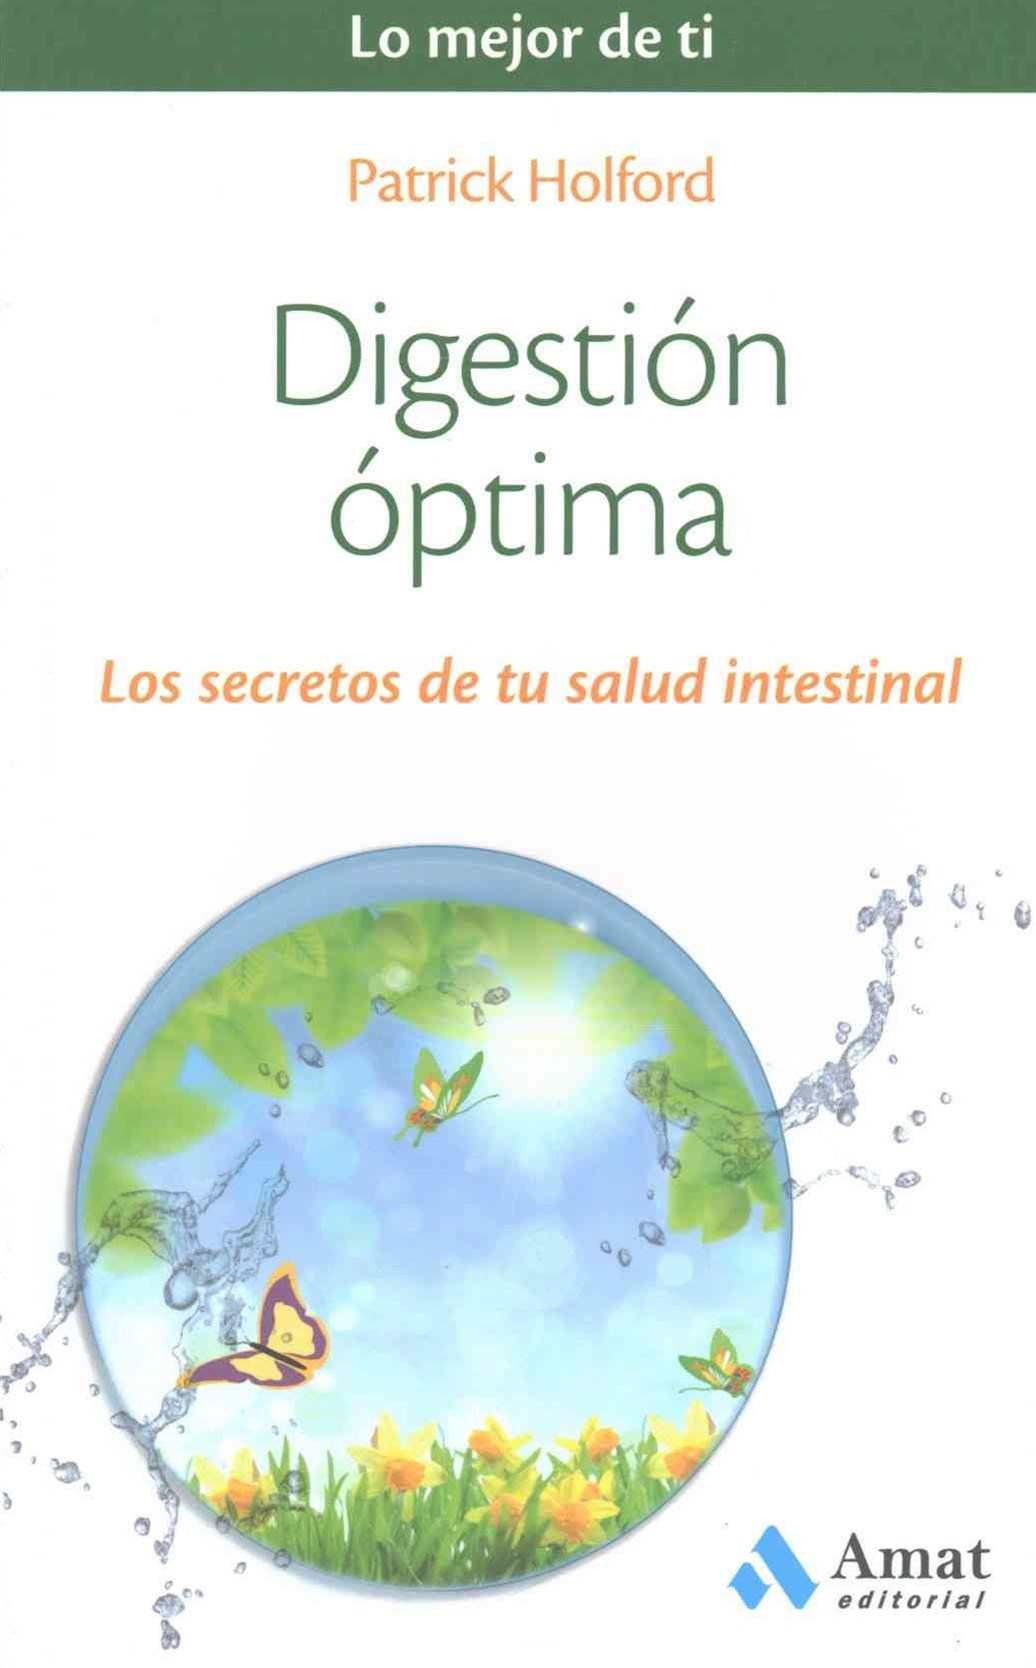 Digesti+¦n +¦ptima/ Improve Your Digestion